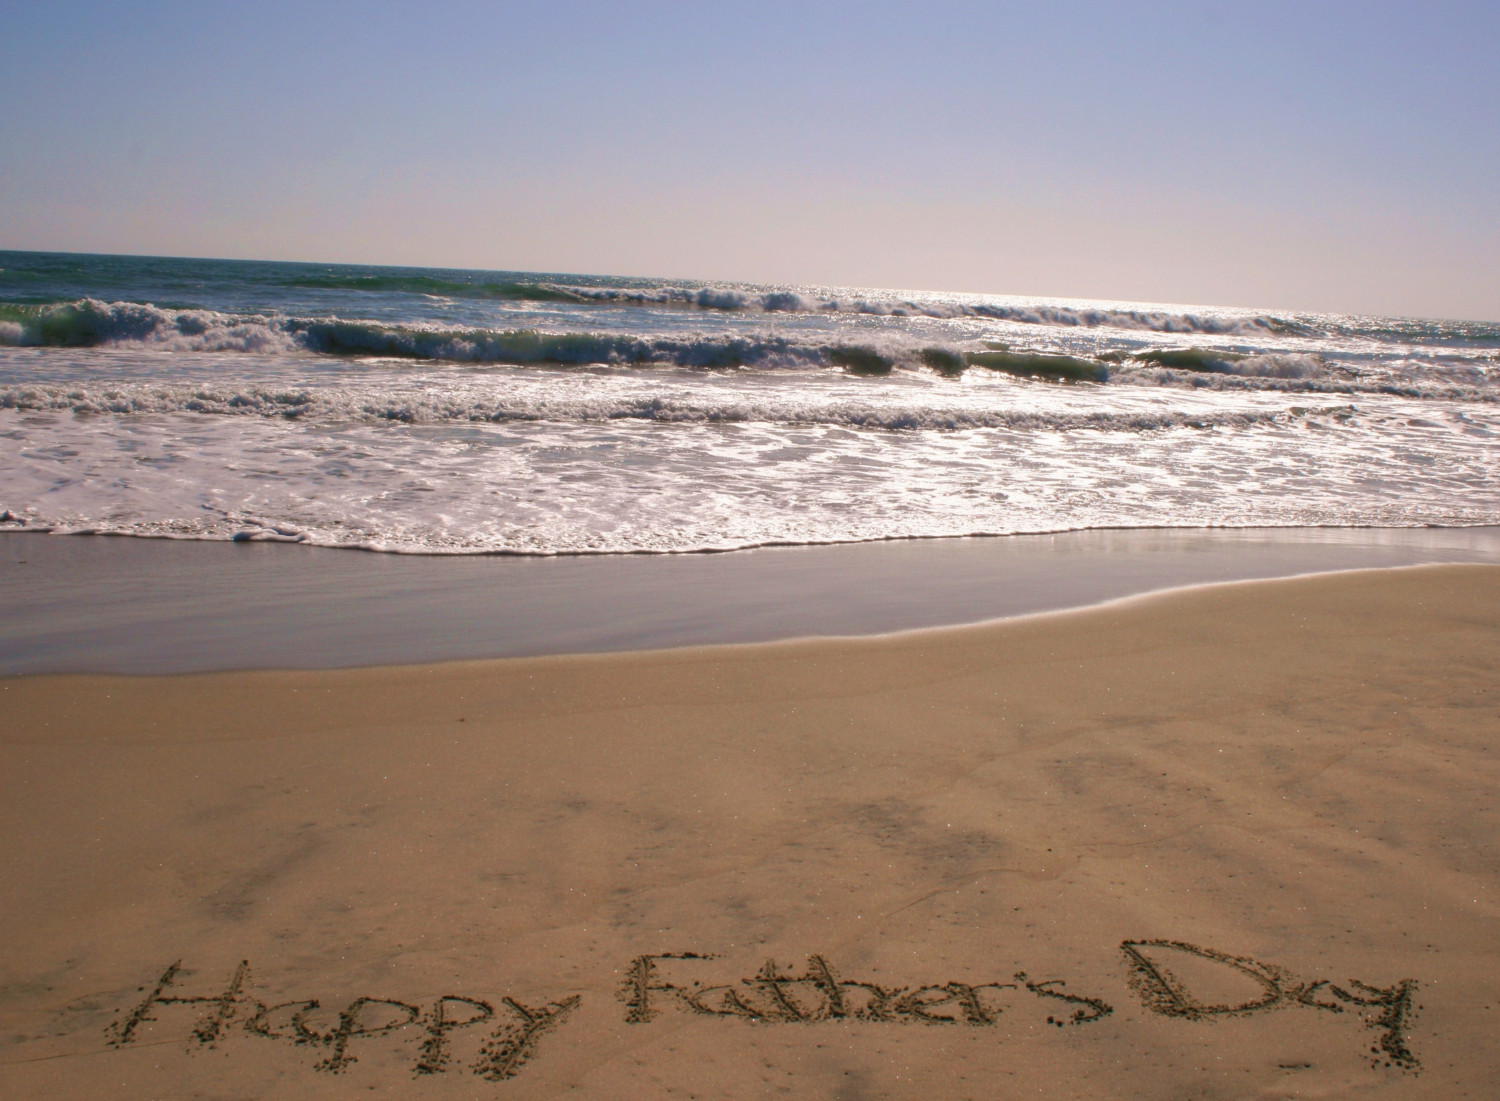 Celebrate Dad's Day at     spa manzanita!      Surprise the dad in your world with one of our Father's Day Specials.     We would love to help you let dad know how much he means to you.      Use this coupon to take 20% off Dad's service.    Just let us know when you book or check out that you received this email offer.     You can also use this coupon to purchase a gift card or a gift in our spa store.        Offer Expires 06/26/2016